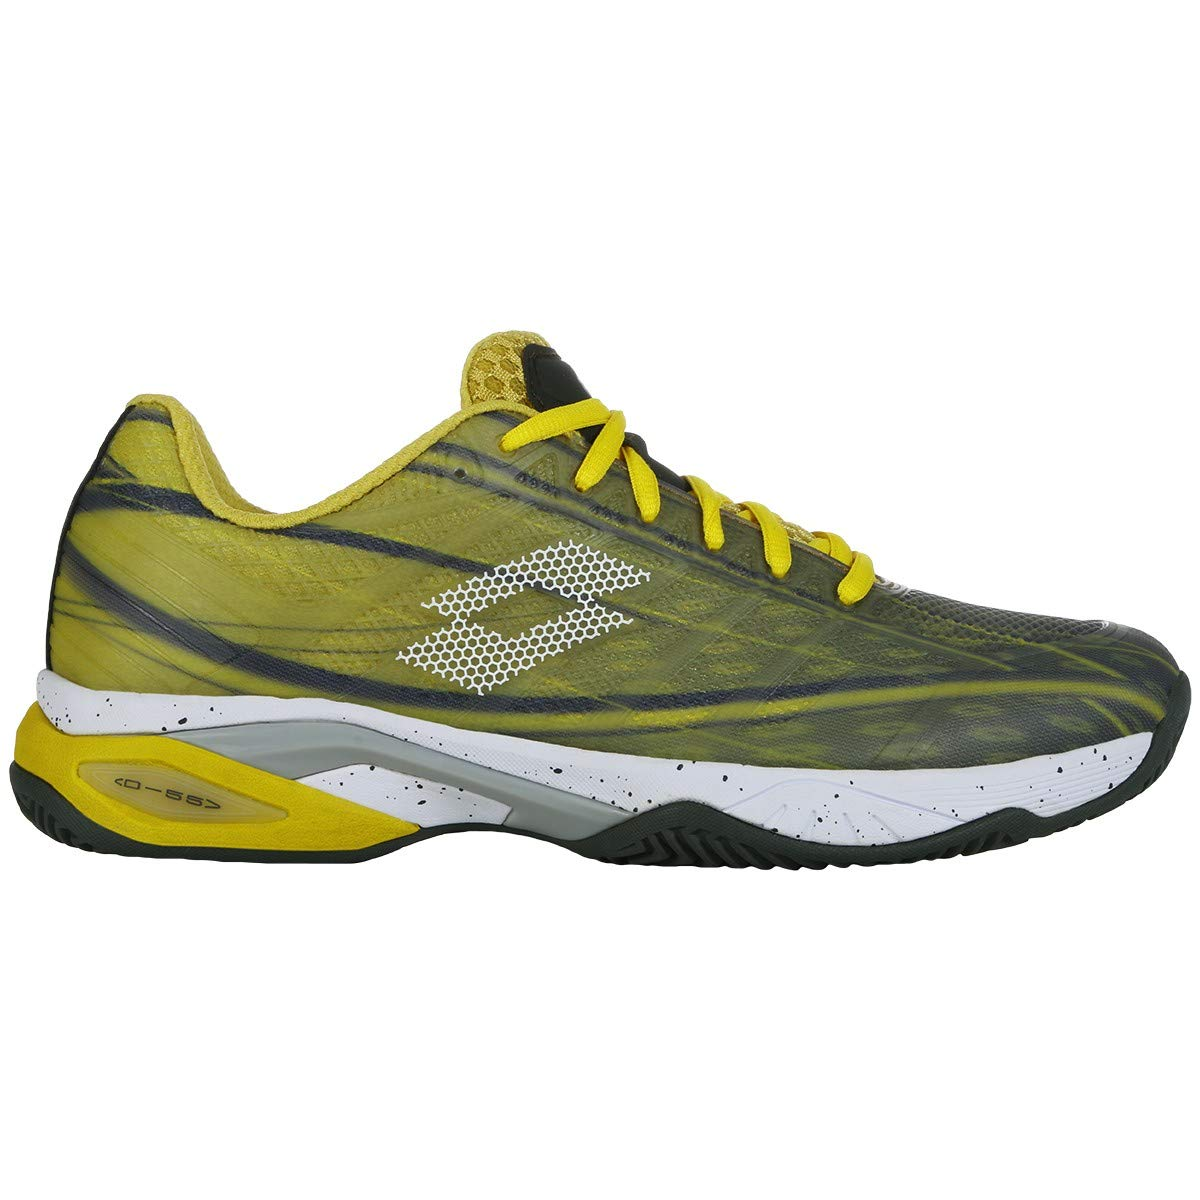 Zapatillas Lotto Mirage 300 Cly Tenis-Padel nº45: Amazon.es ...